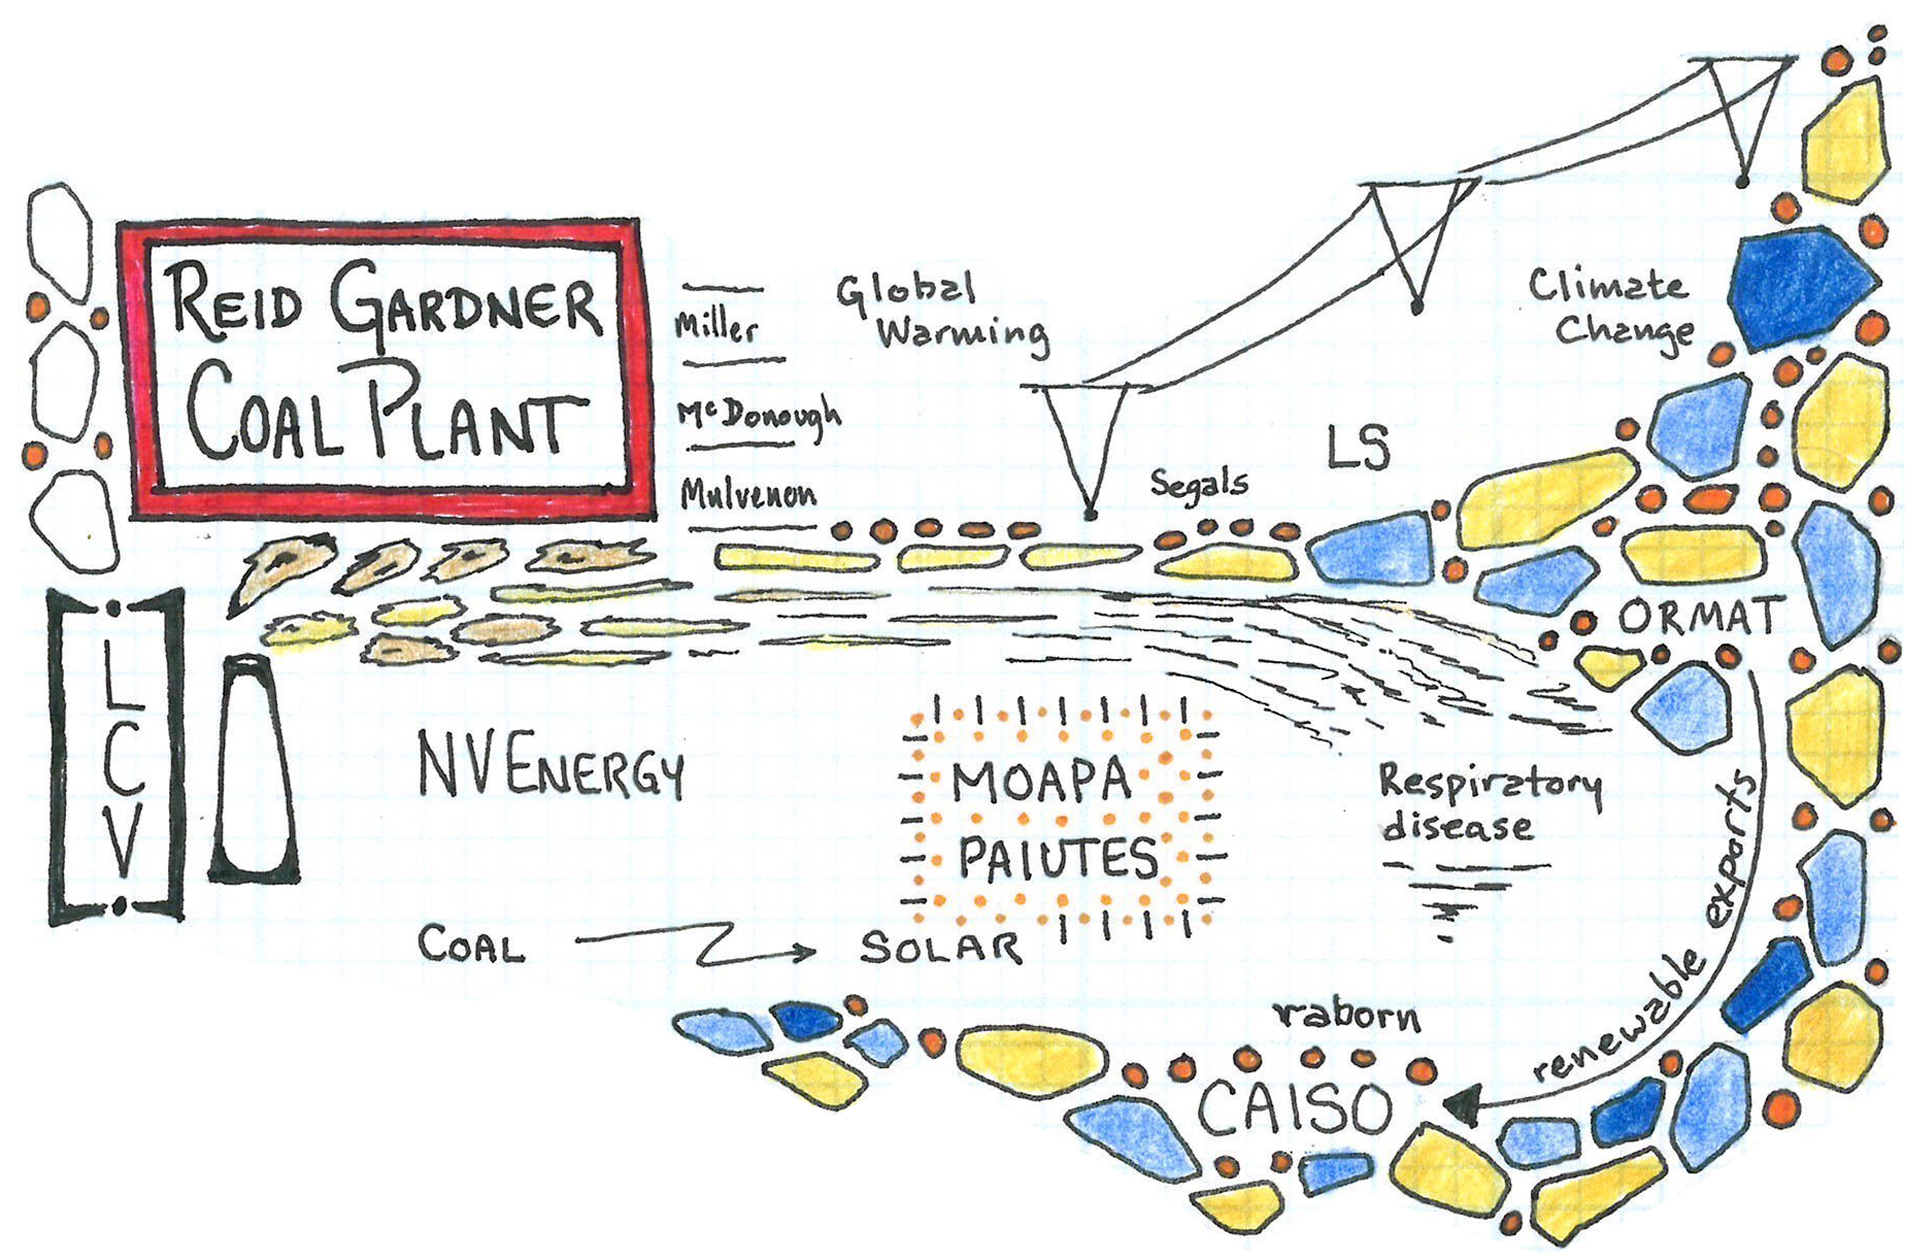 """The """"Reid Gardner Coal Plant"""" panel of Sen. Harry Reid's environmental power map represents Reid's decision to kill coal while establishing the infrastructure for renewable energy. 